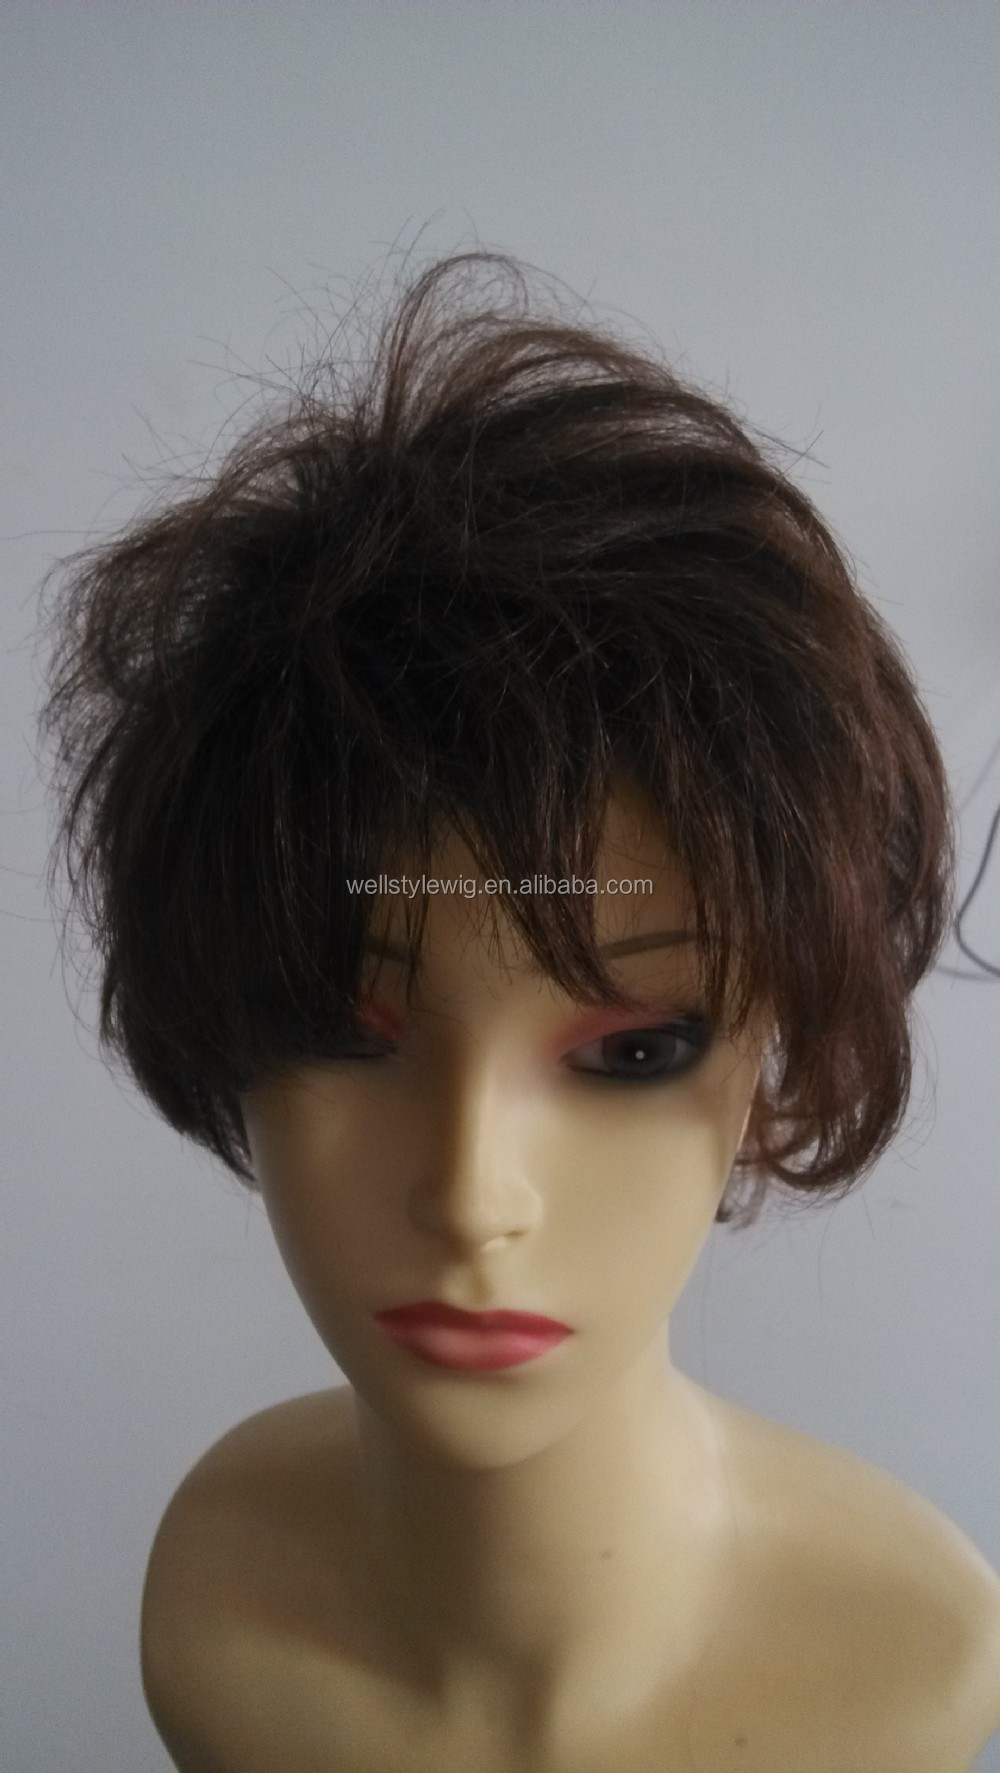 Factory price natural looking full cuticle indian short human hair wig for black women